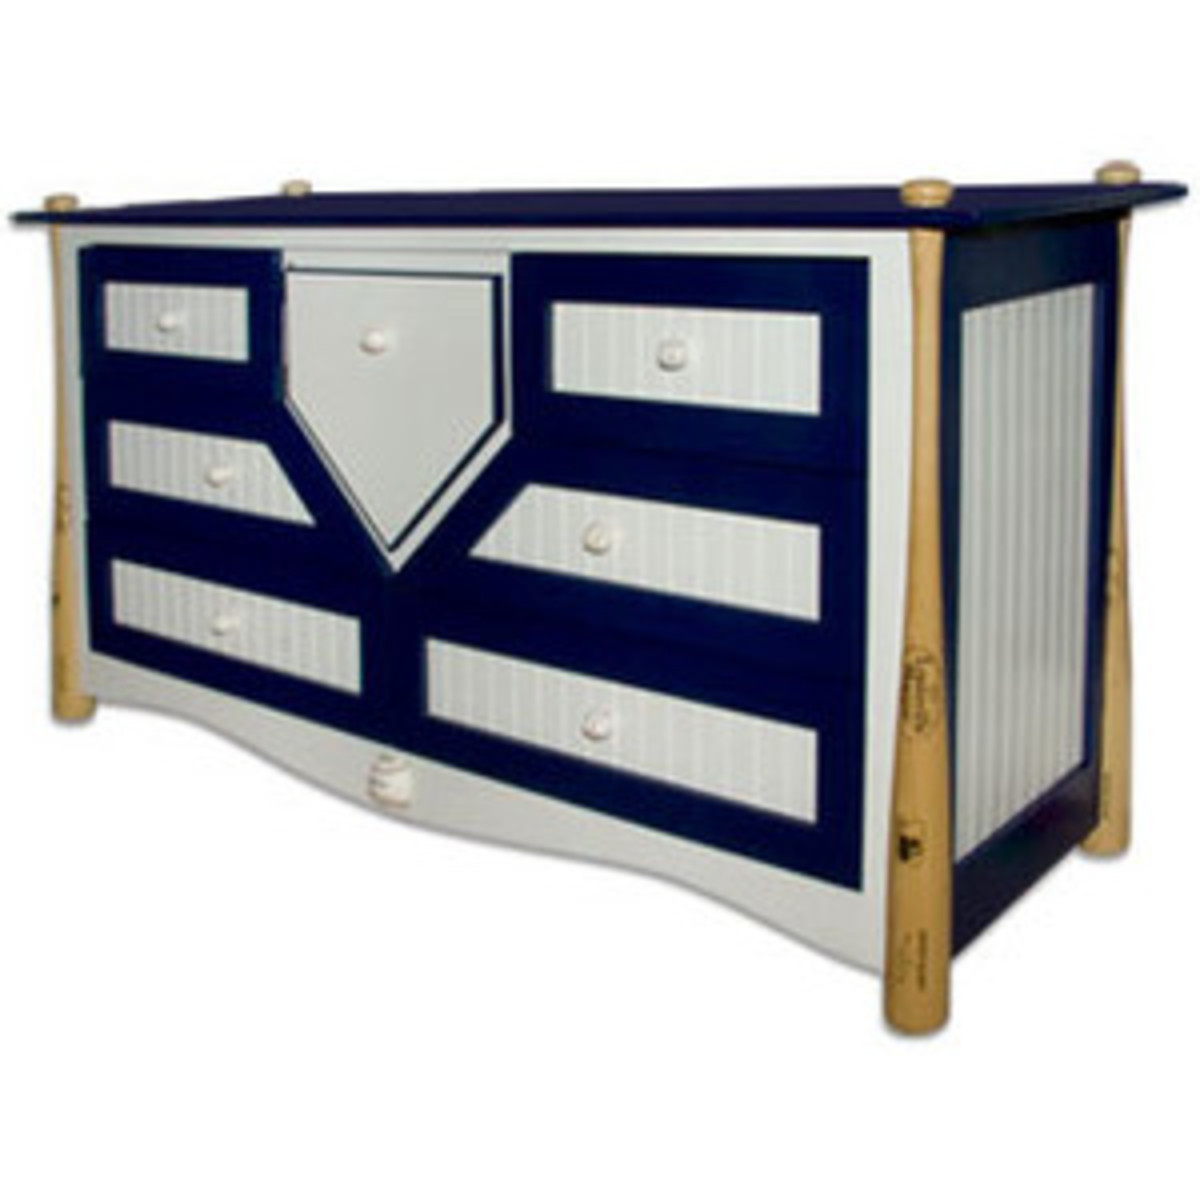 hand painted blue and white dresser with baseball bat decorations